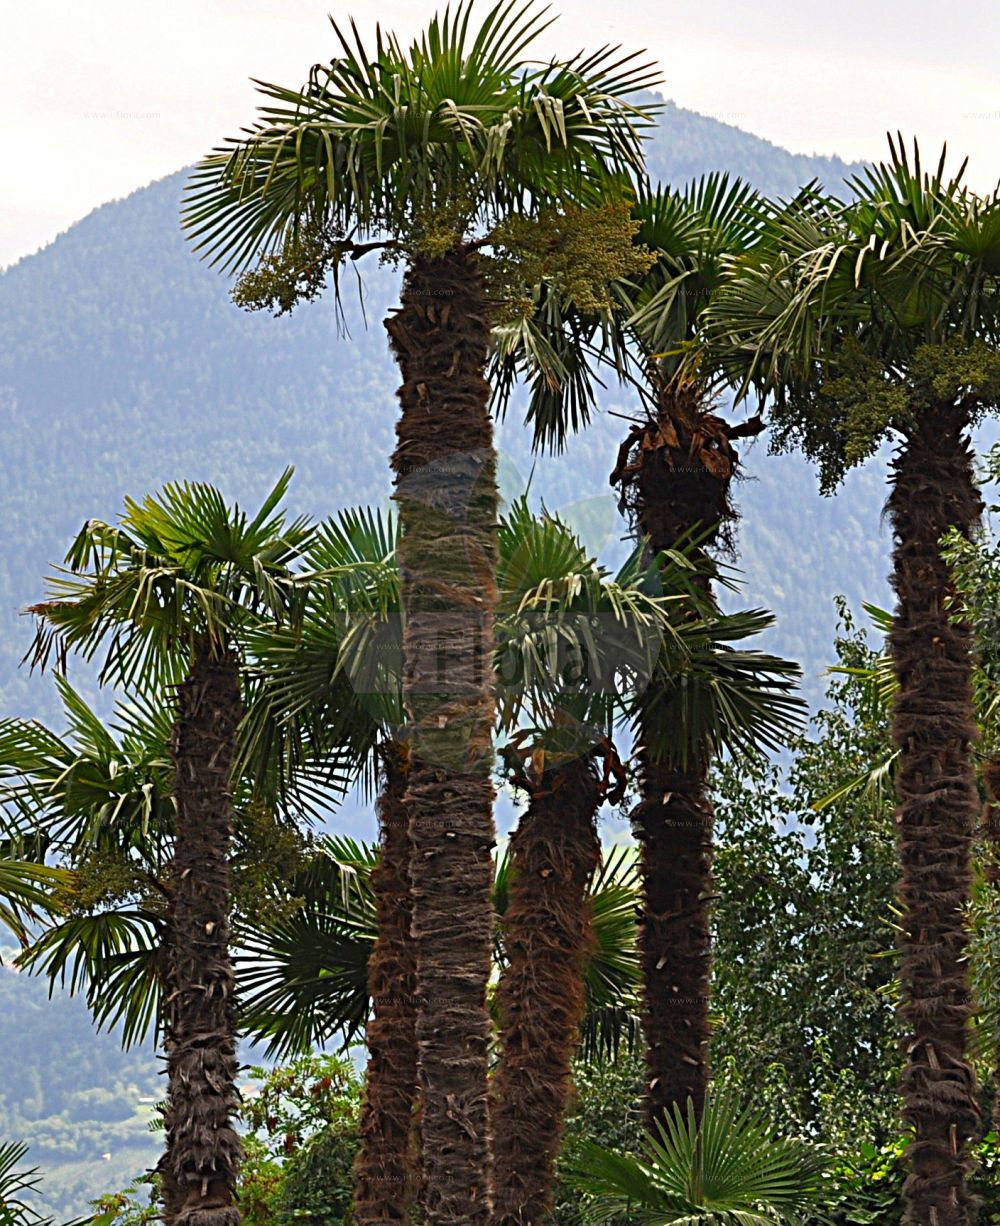 Foto von Trachycarpus fortunei (Chinesische Hanfpalme - Chusan Palm). Das Foto wurde in Meran, Suedtirol, Italien aufgenommen. ---- Photo of Trachycarpus fortunei (Chinesische Hanfpalme - Chusan Palm).The picture was taken in Meran, South-Tyrol, Italy. (Trachycarpus fortunei,Chinesische Hanfpalme,Chusan Palm,Chinese Windmill Palm,Chusan Fan Palm,Windmill Palm,Trachycarpus,Hanfpalme,Chinese Windmill Palm,Arecaceae,Palmengewaechse,Palm family)